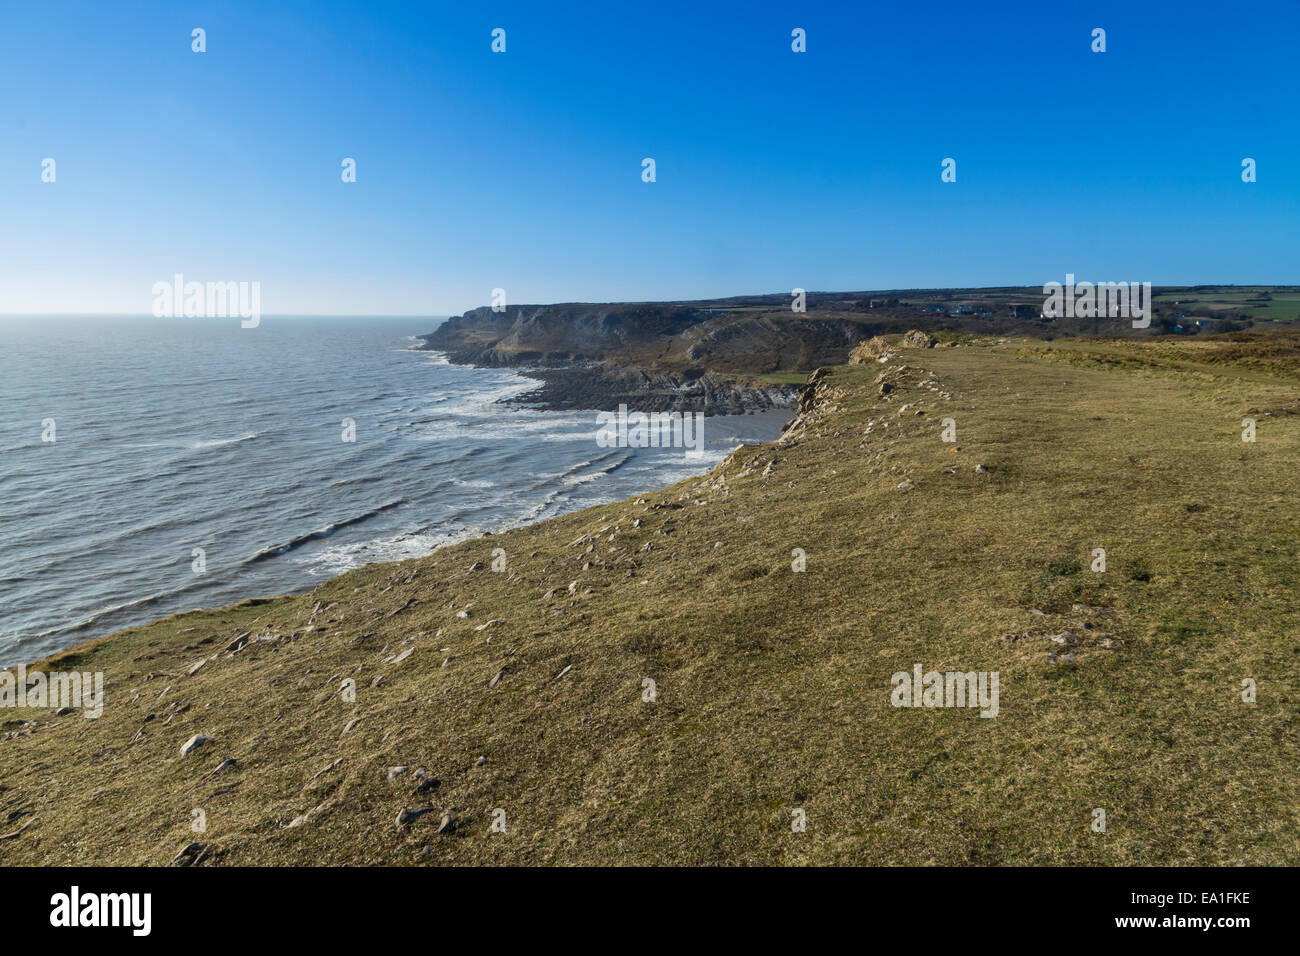 Looking west from Port Eynon Point, towards Overton Cliff and Common Cliff. Gower Peninsula, Swansea, South Wales, - Stock Image